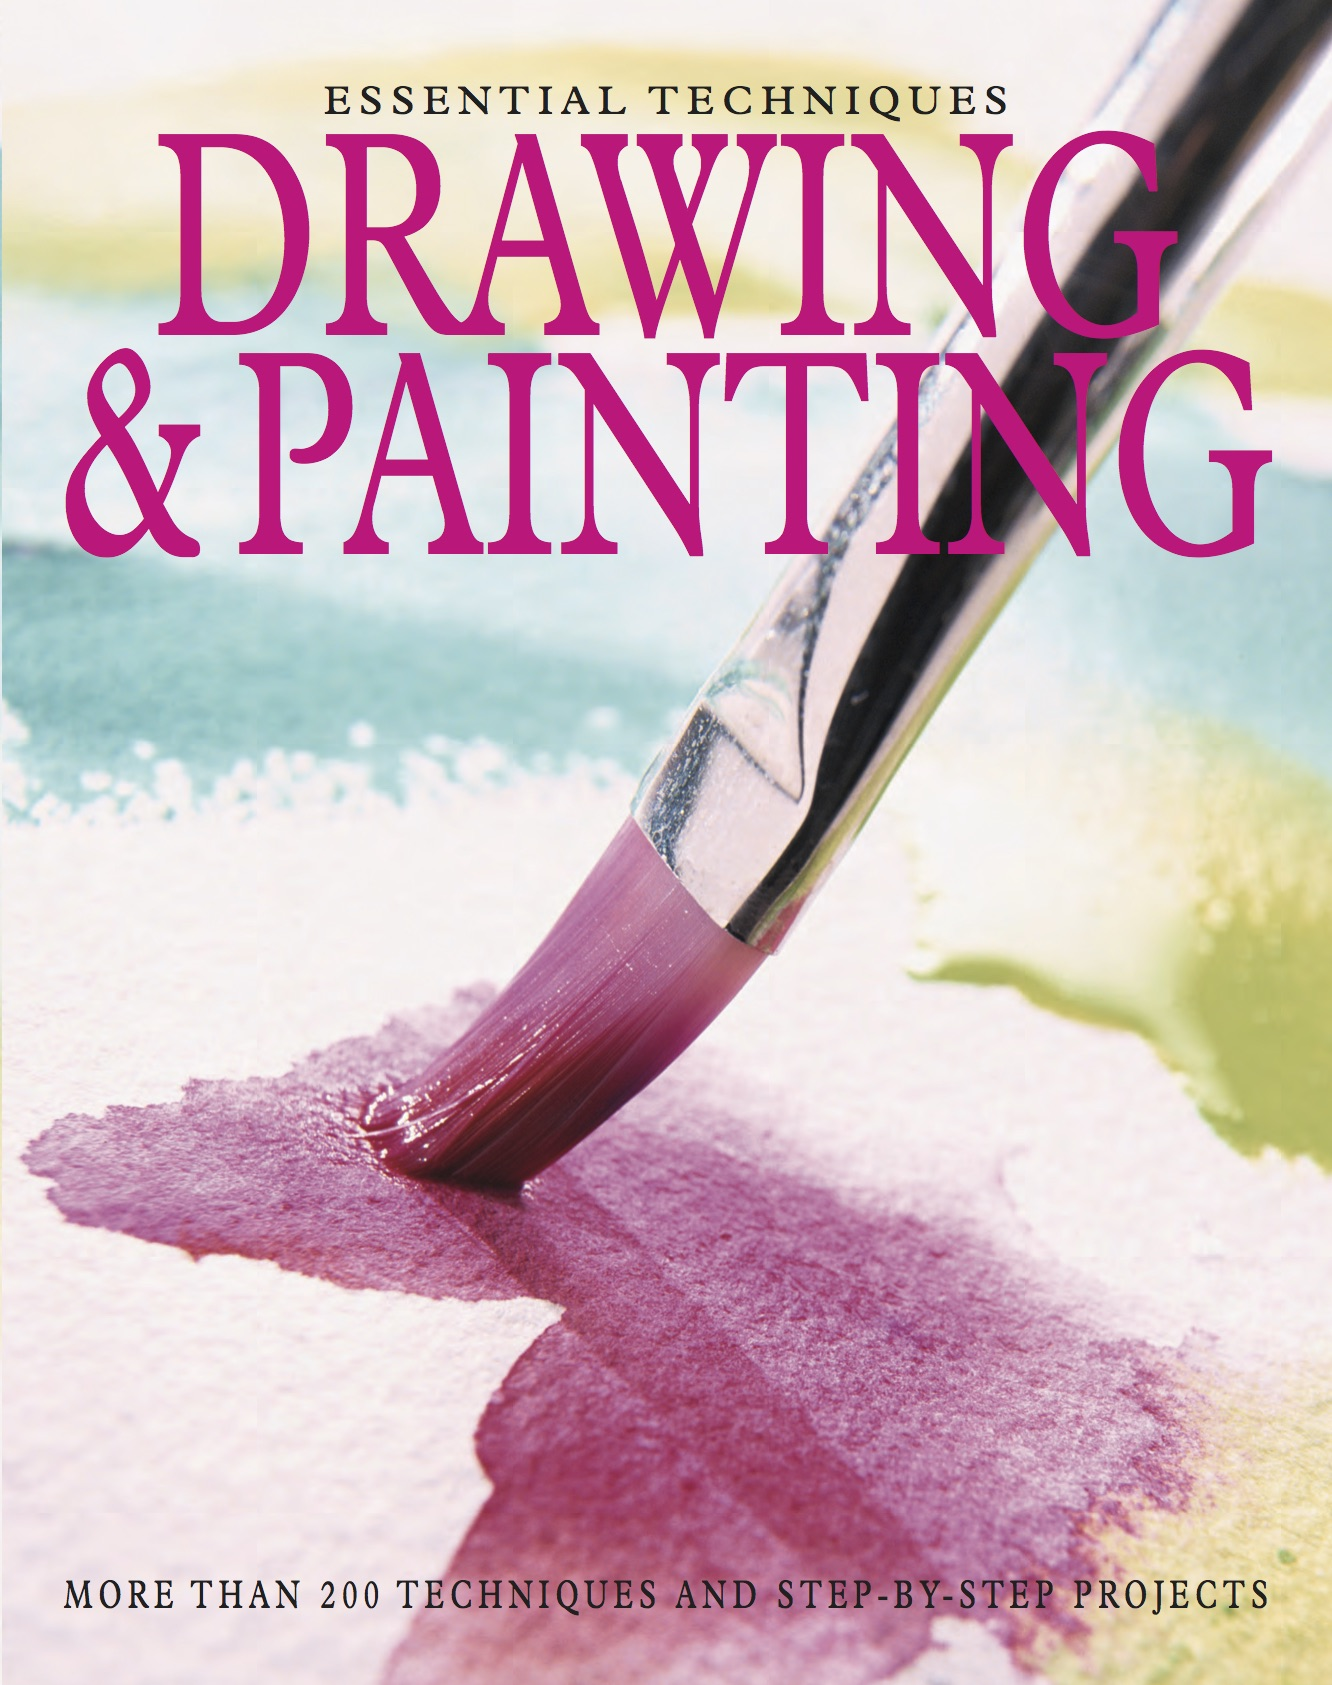 Essential Techniques: Drawing & Painting